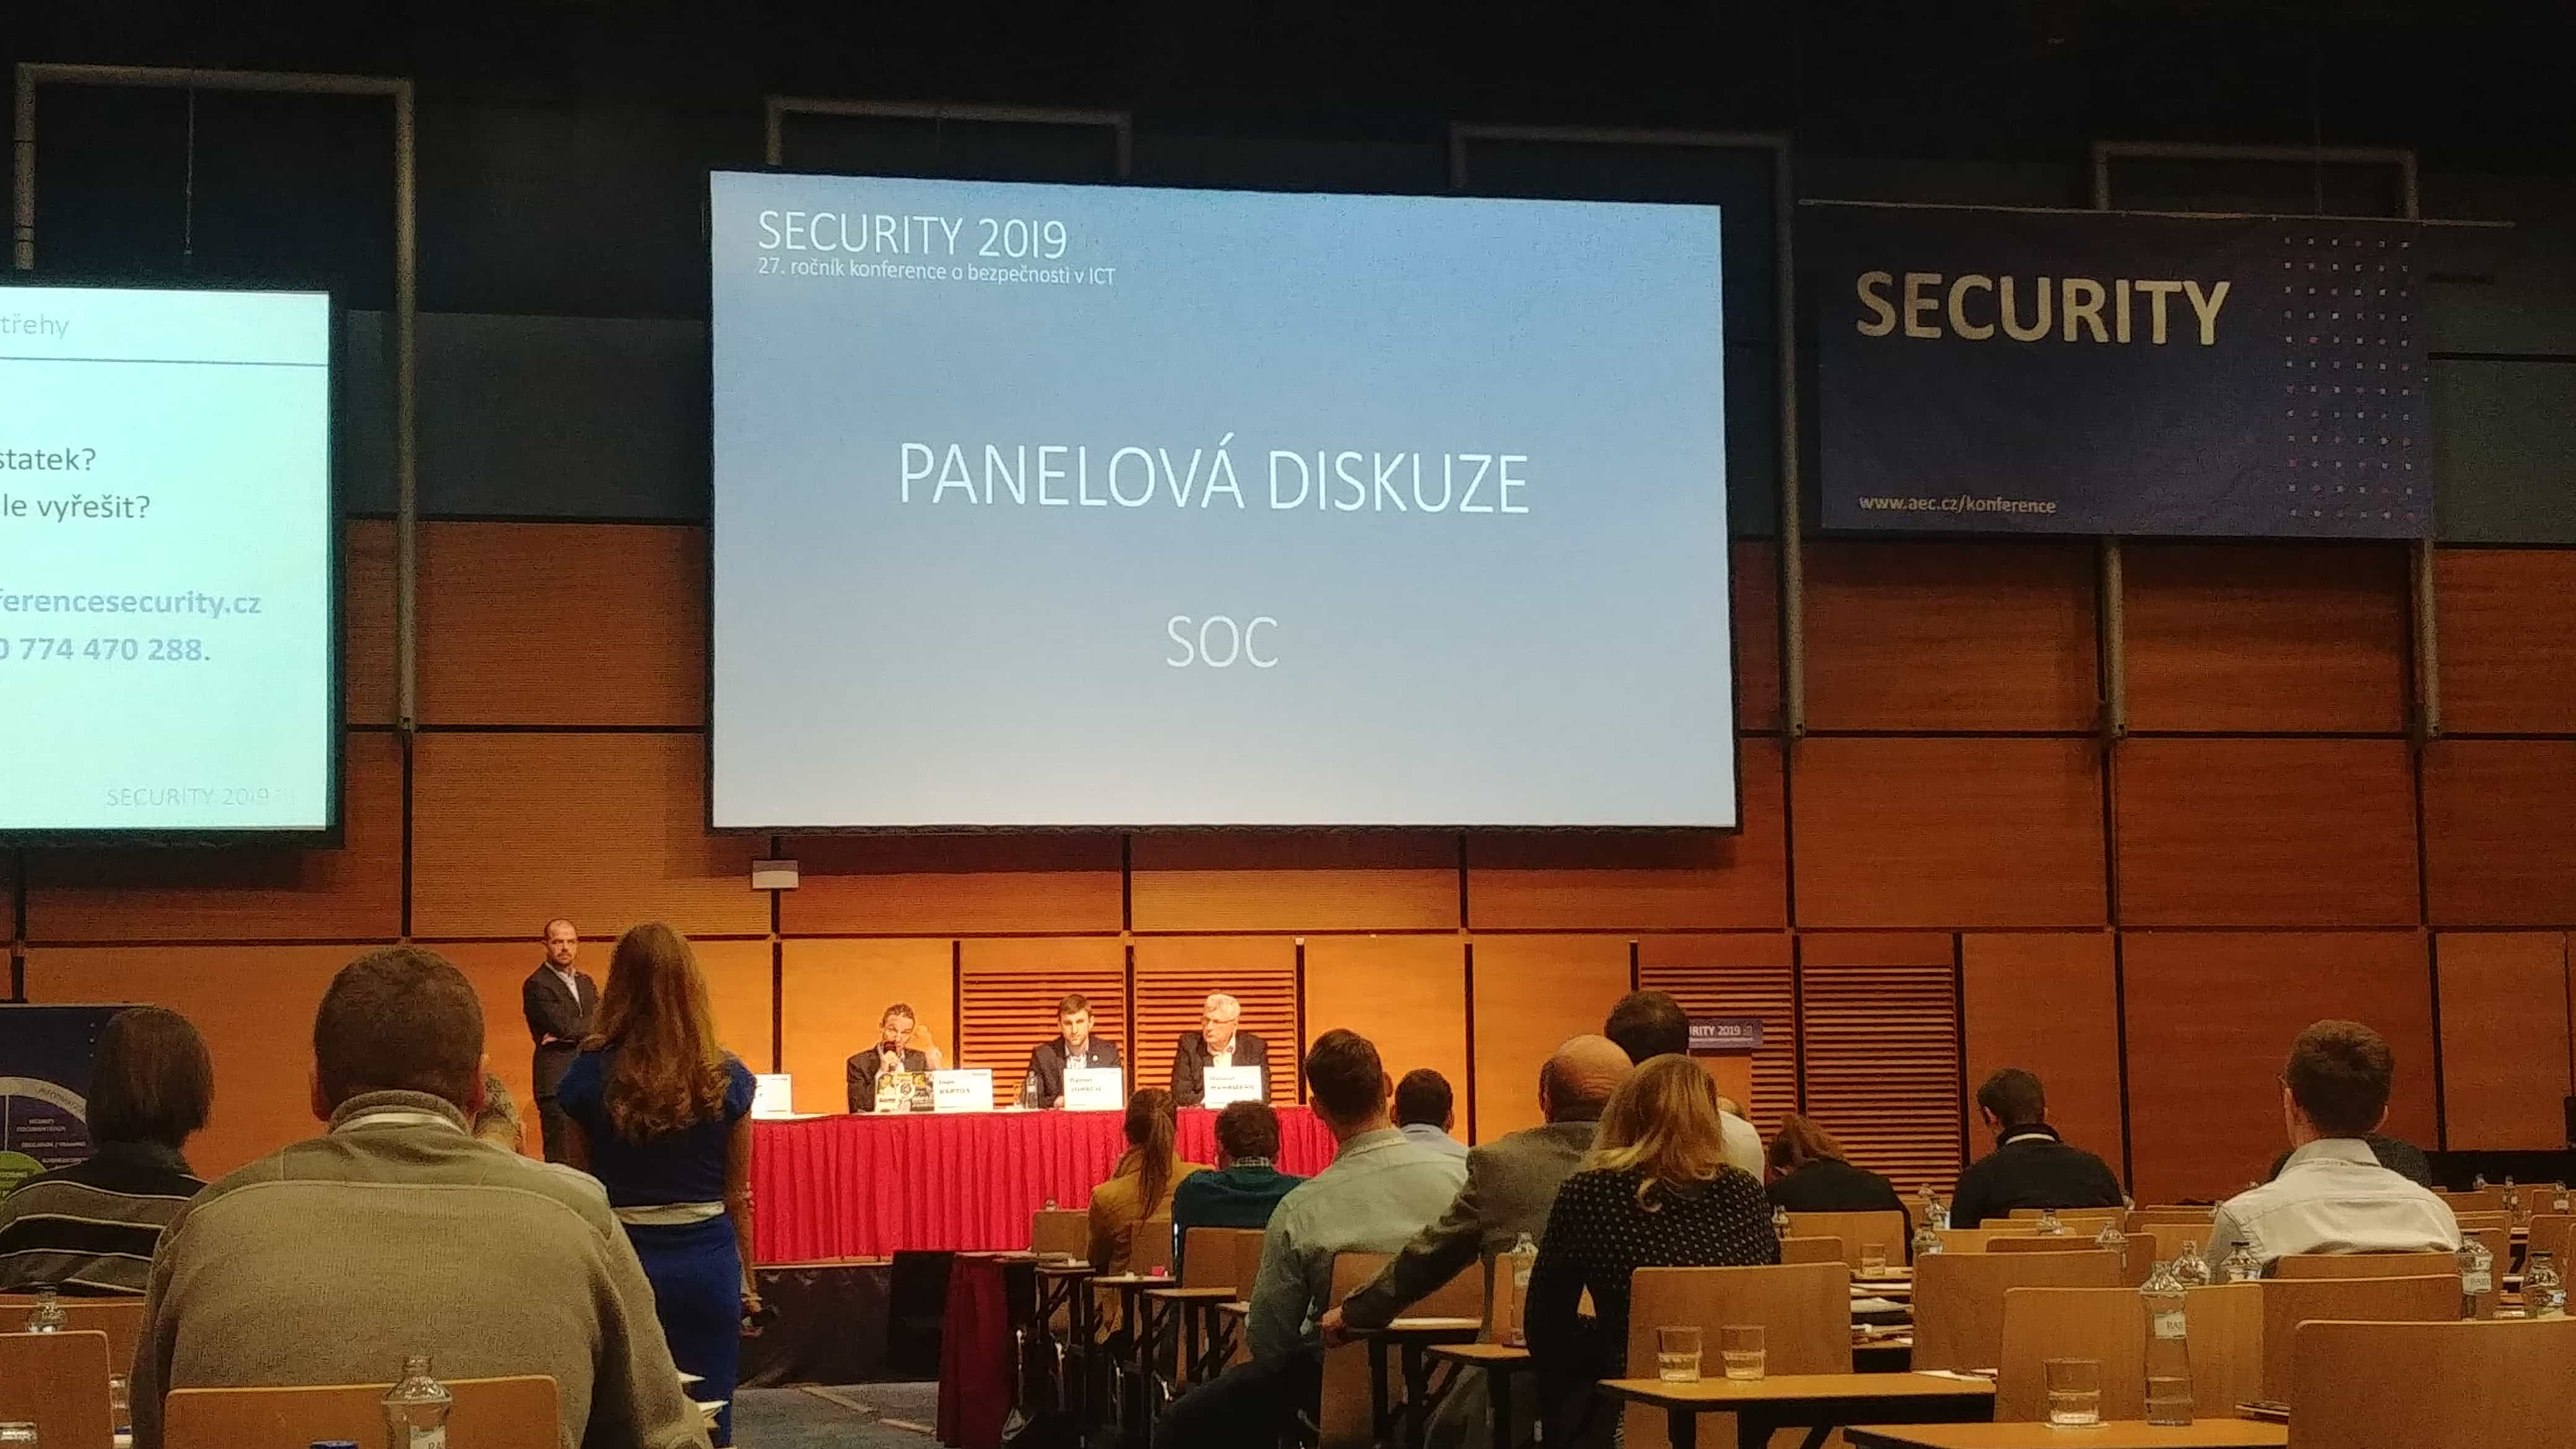 konference security 2019 89